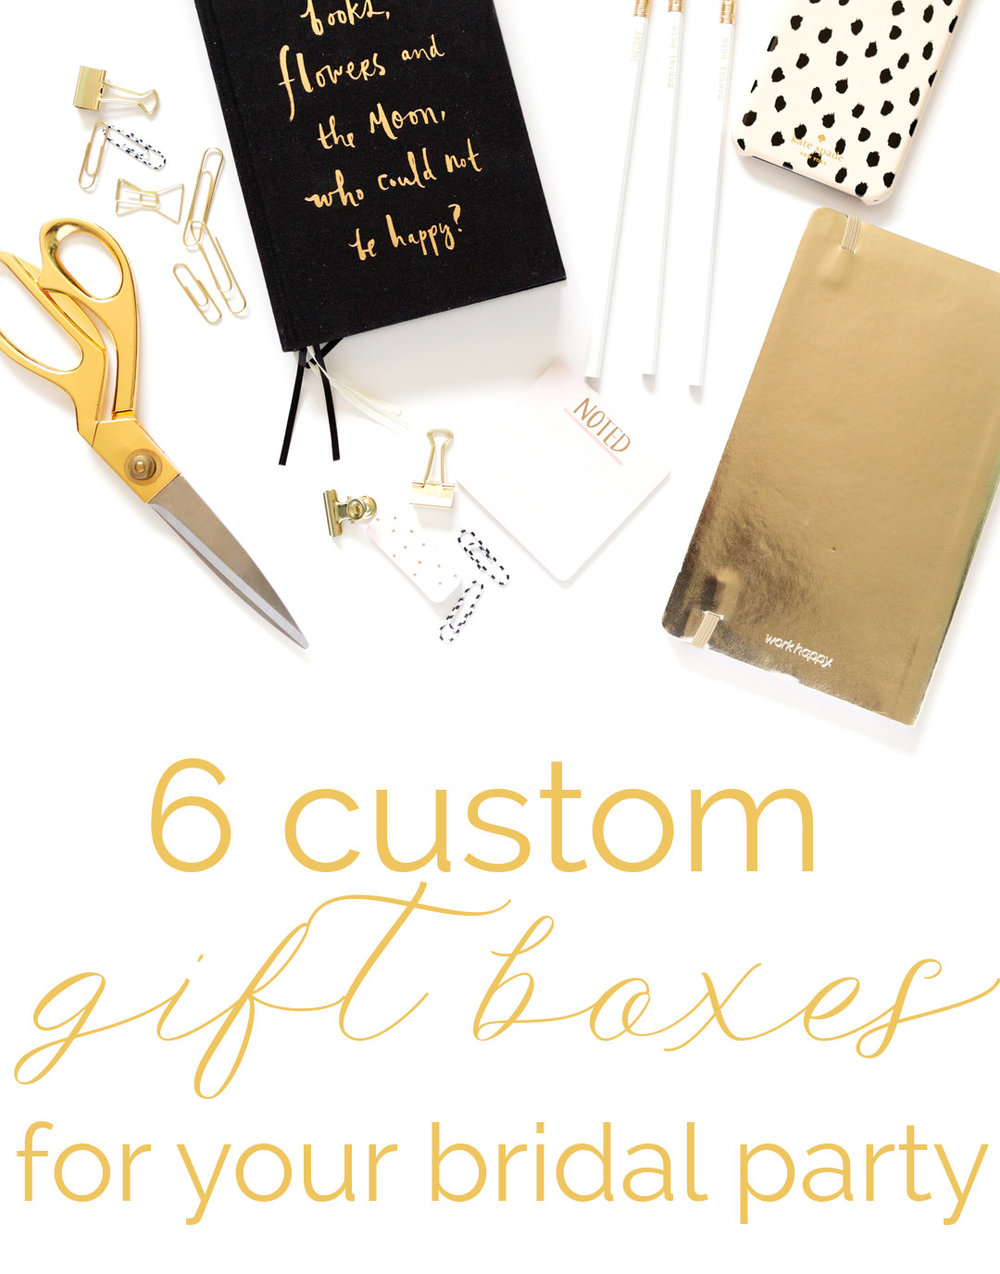 Curated gift boxes for your bridal party.  Gift boxes you can buy or DIY.